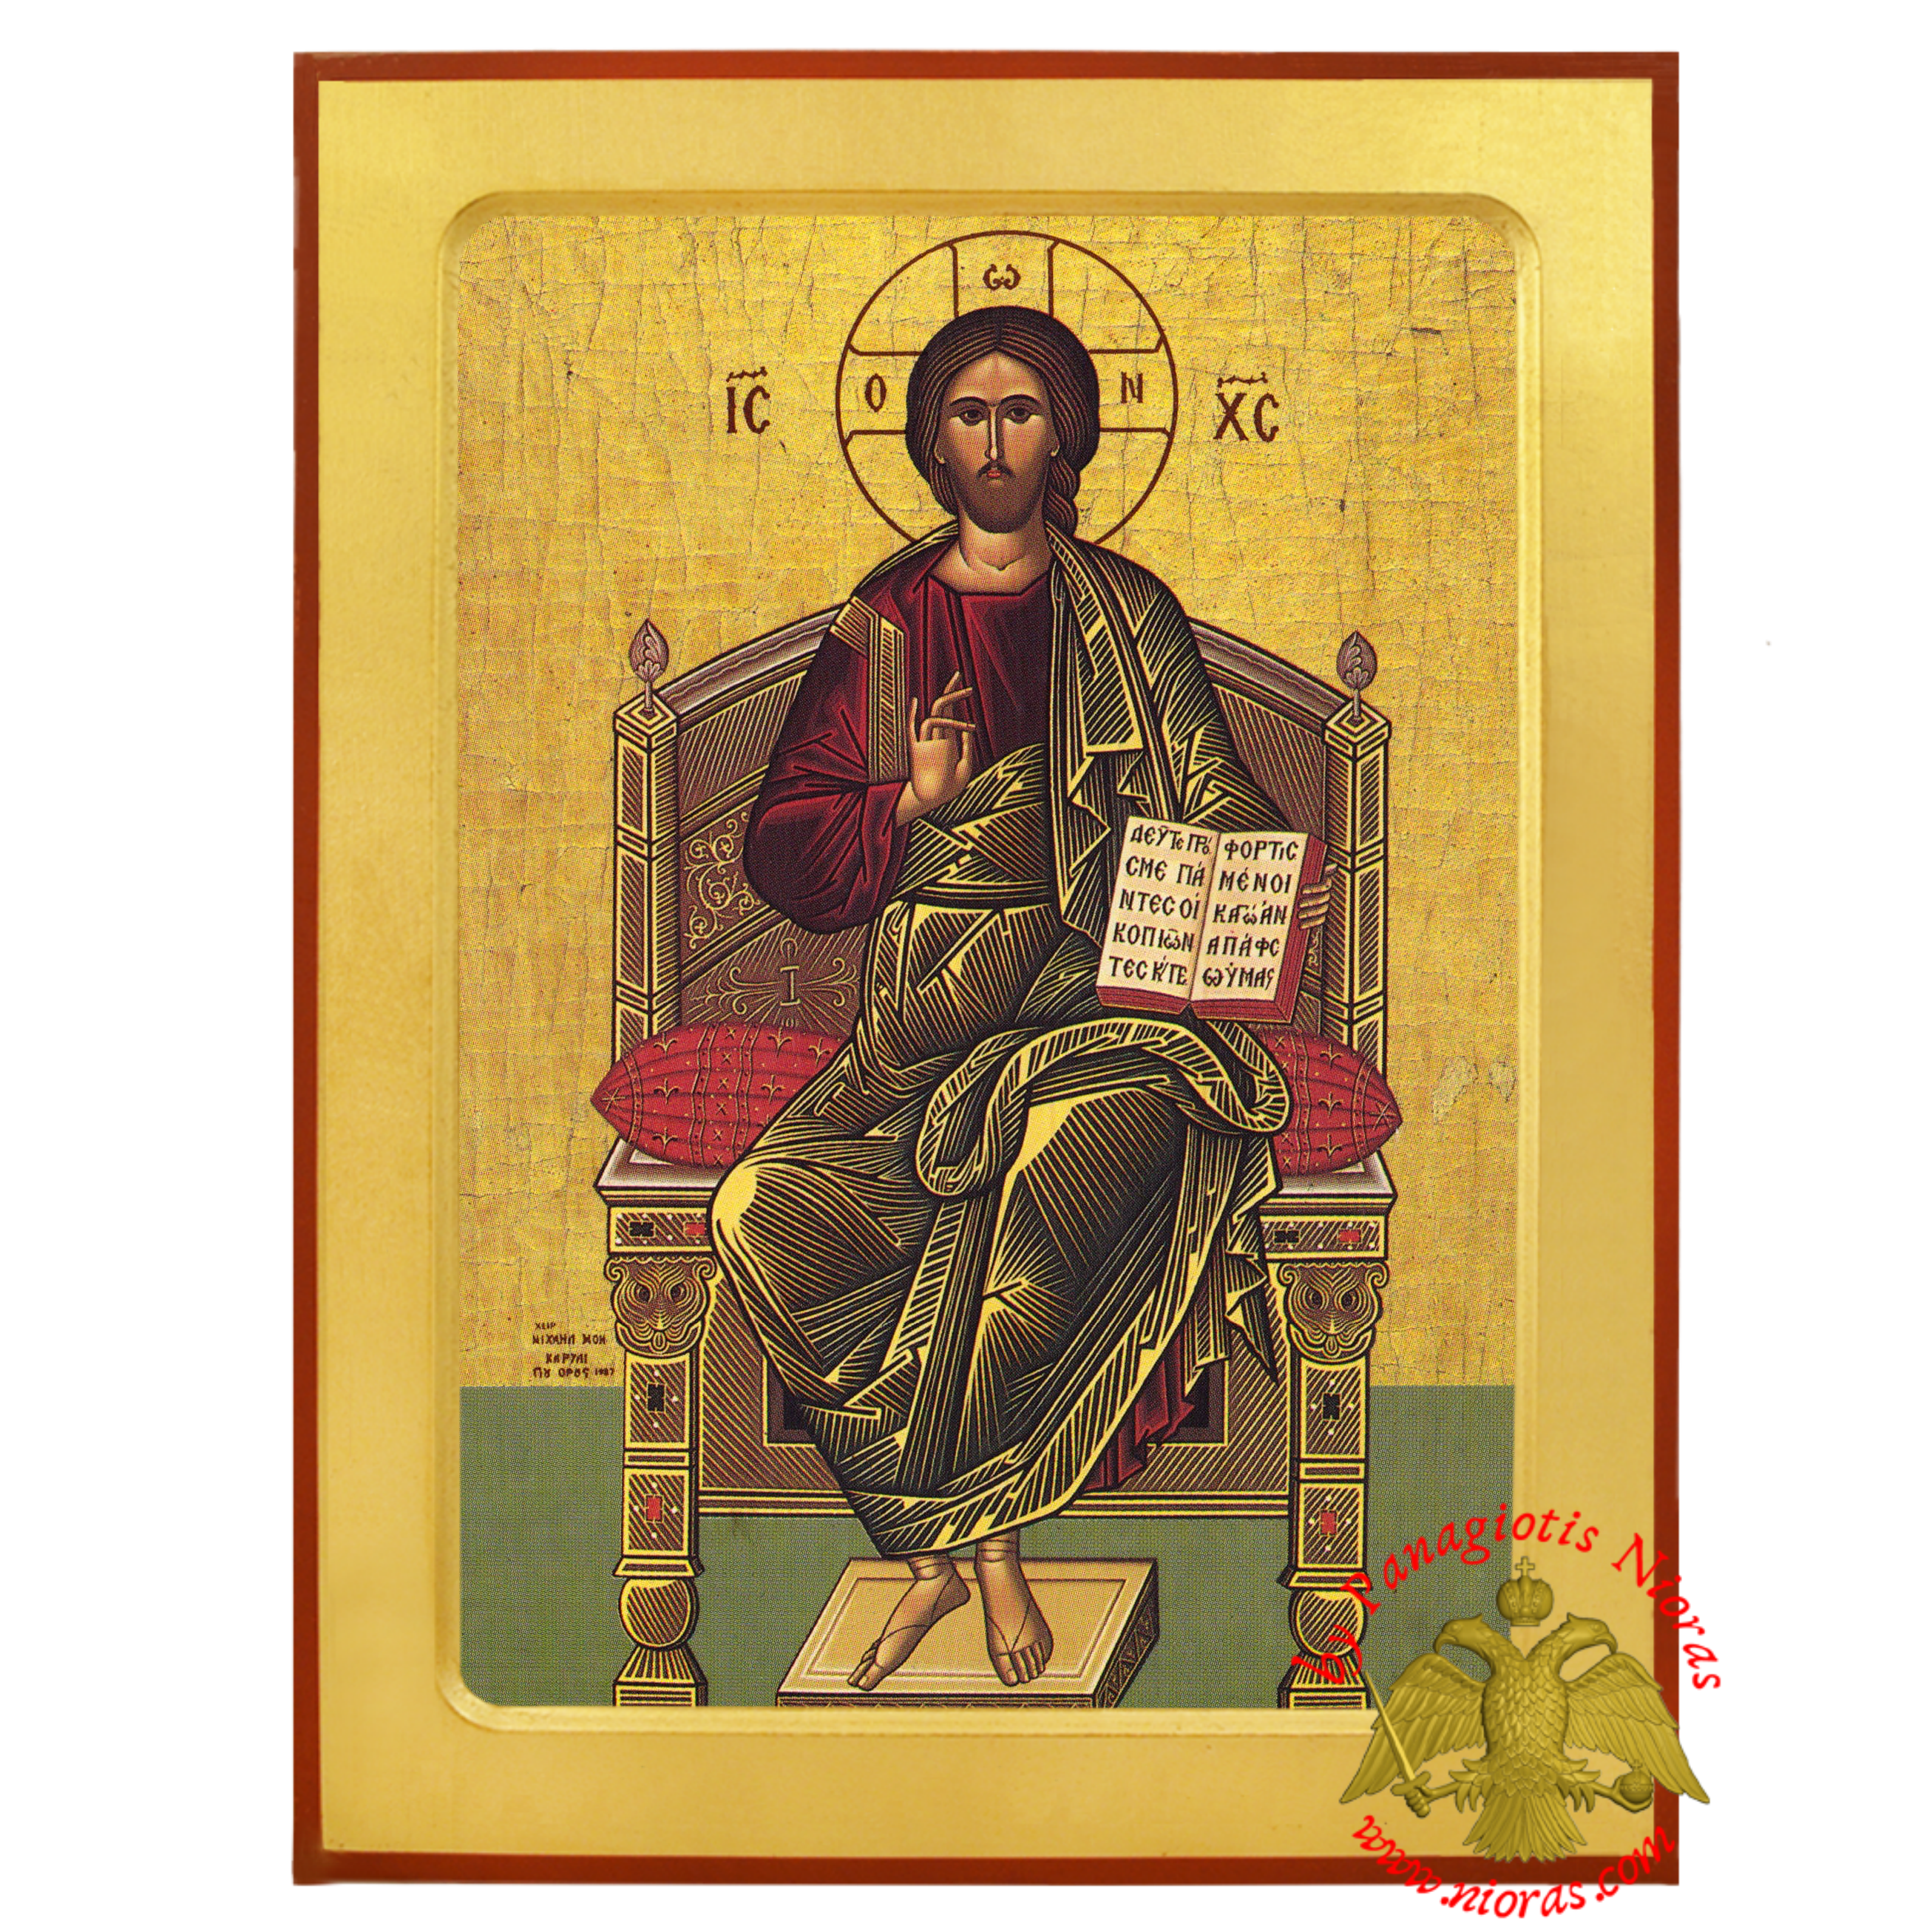 Jesus Christ Enthroned Orthodox Byzantine Wooden Icon, Michael Monk of Mount Athos